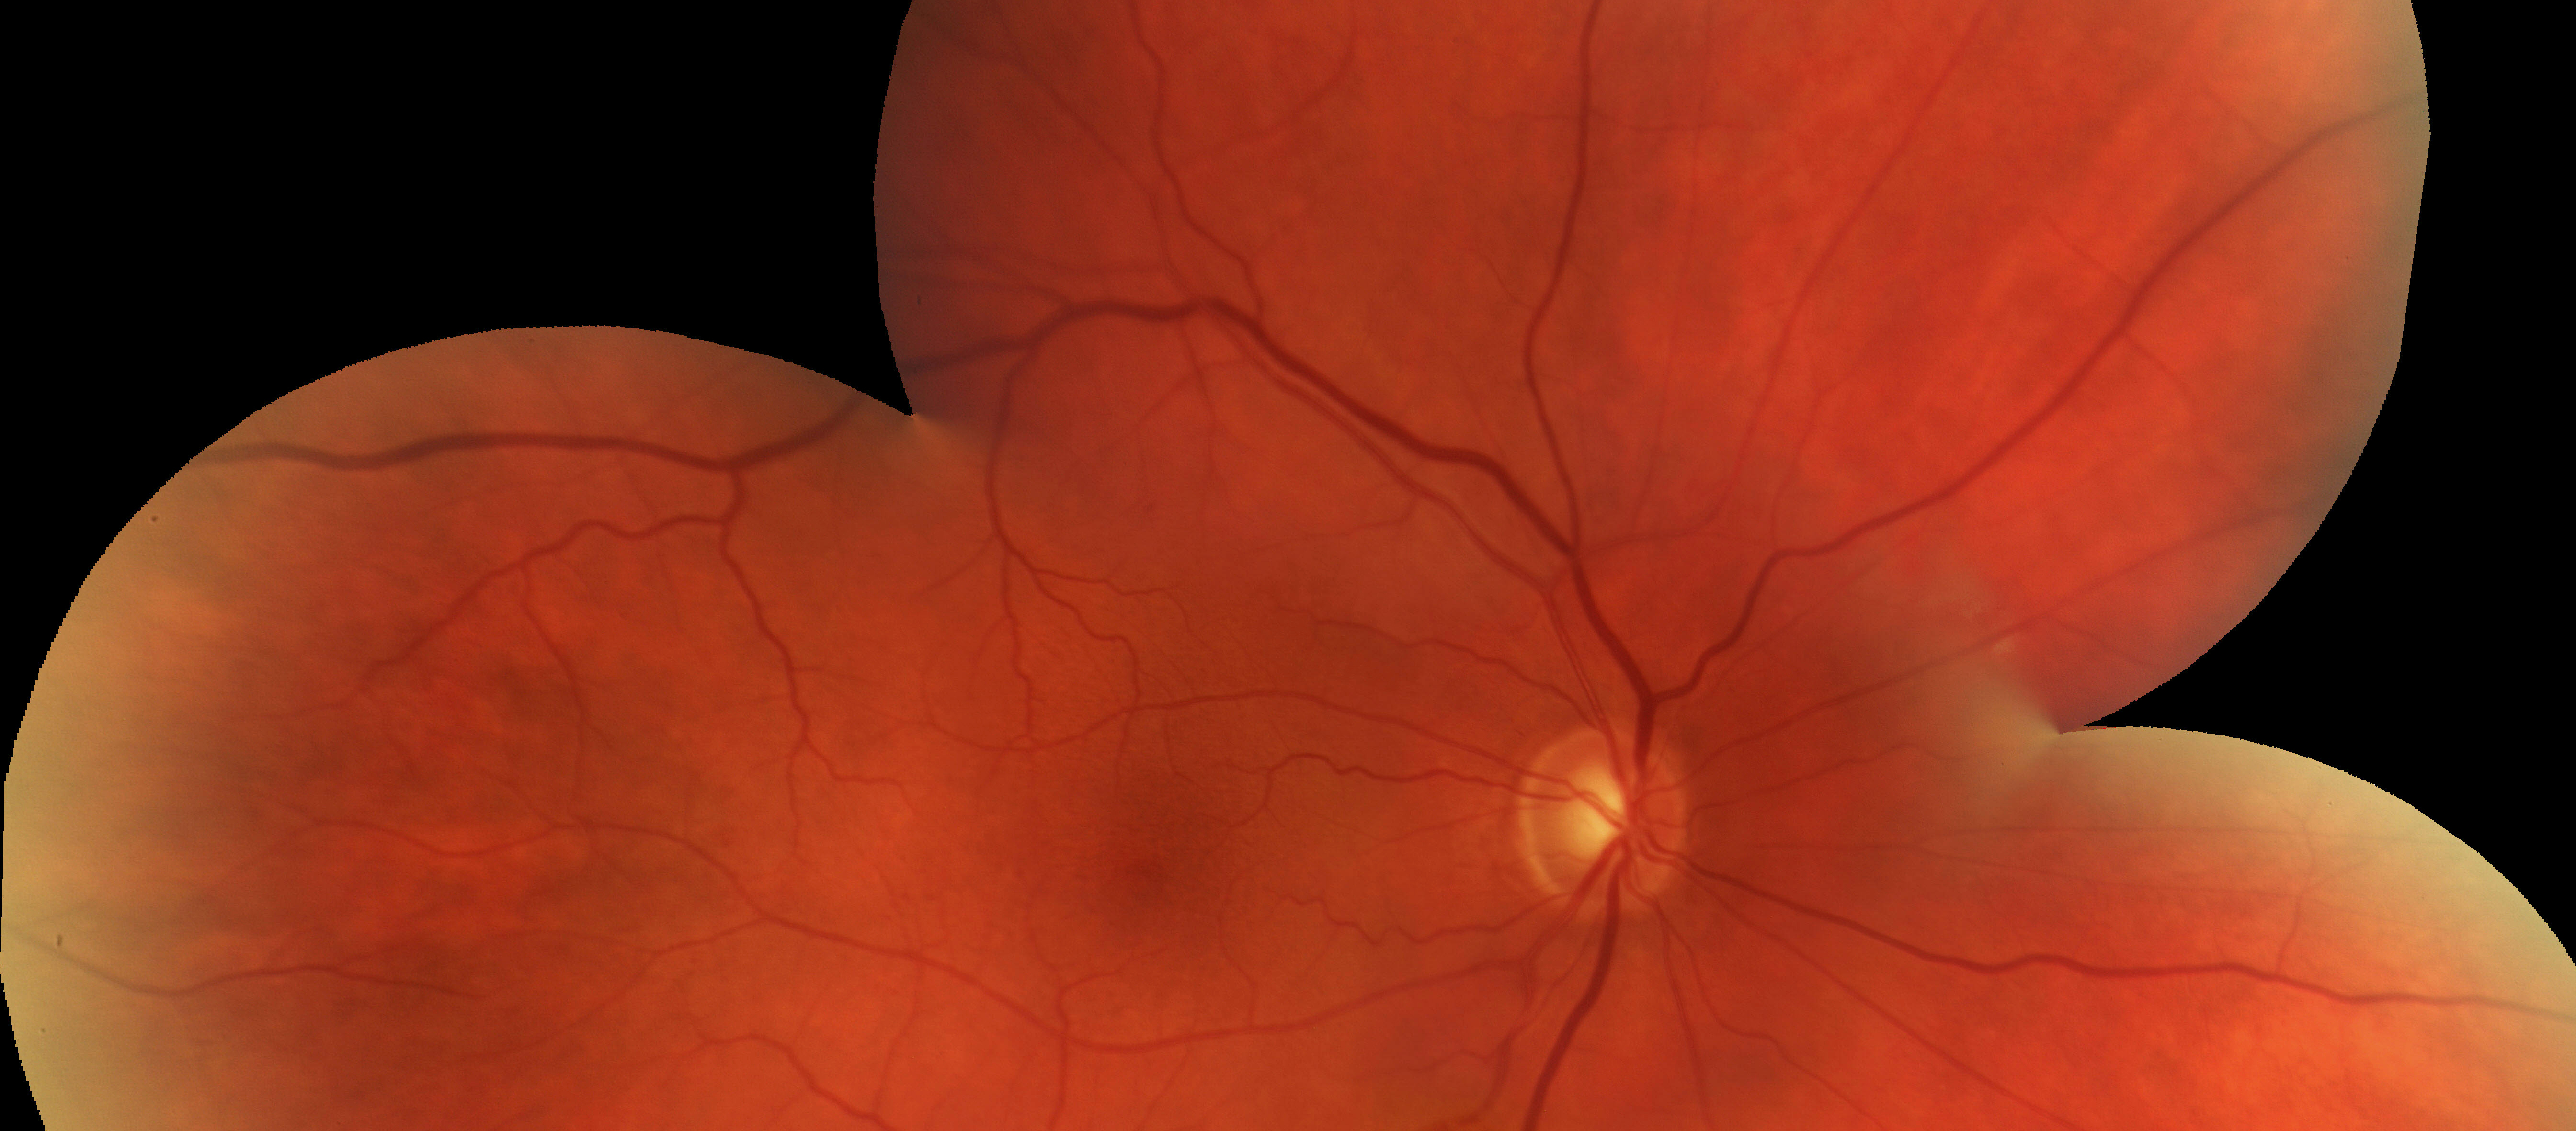 A photo of a retinal fundus showing no-to-mild diabetic retinopathy